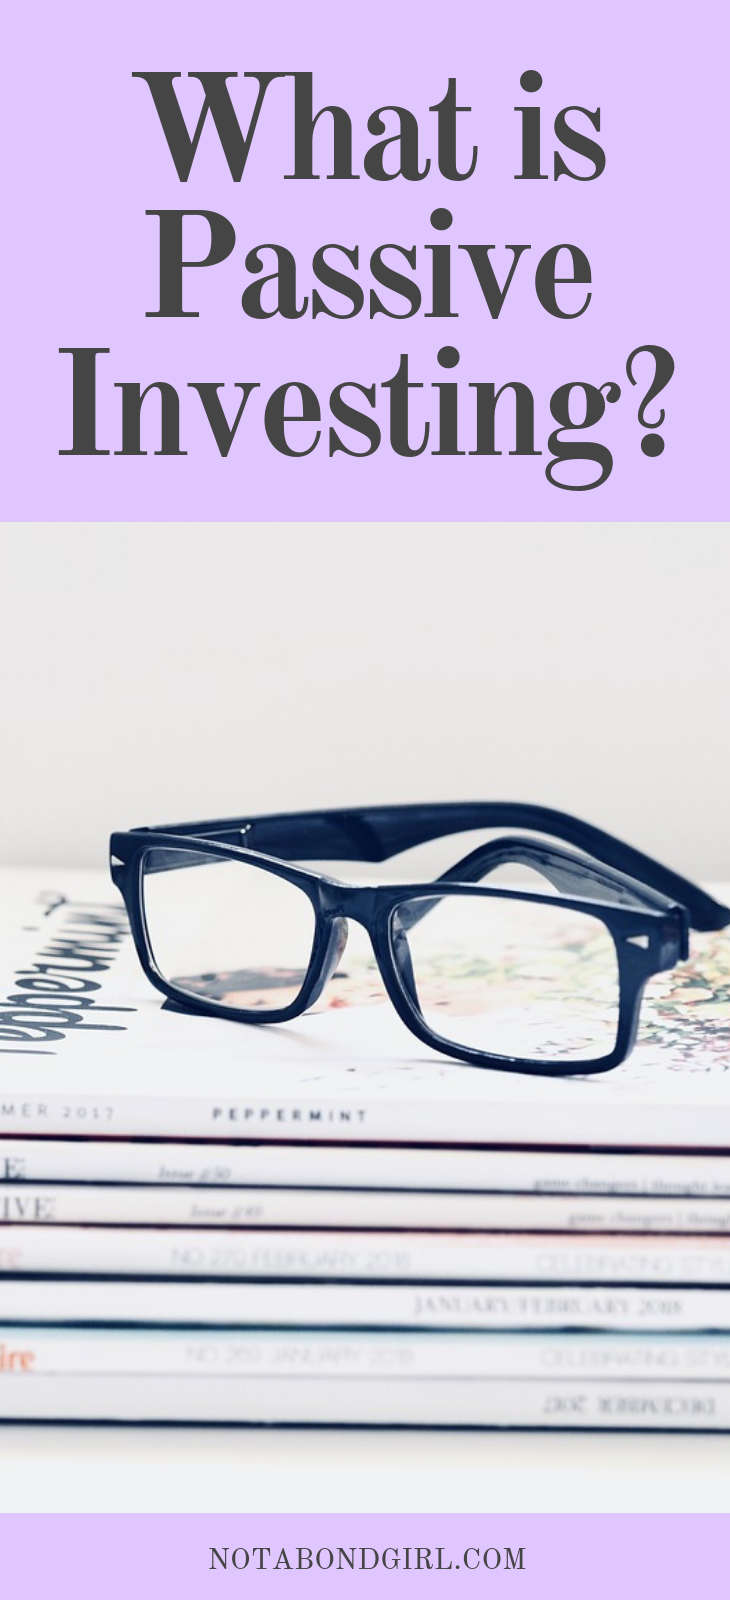 What is Passive Investing? Passive Investment Strategy; Index Fund Investing; Financial Independence Retire Early (FIRE) #money #retirement #careergoals #investment #worklife #financialfreedom #inspiration #financeblogger #selfhelp #frugal #personalfinance #financialindependence #entrepreneurship #finance #girlboss #ladyboss #wealth #goals #abundance #wellness #holisticwealth #millennial #wisdom #mindfulliving #mindfulness #moneychakra #personaldevelopment